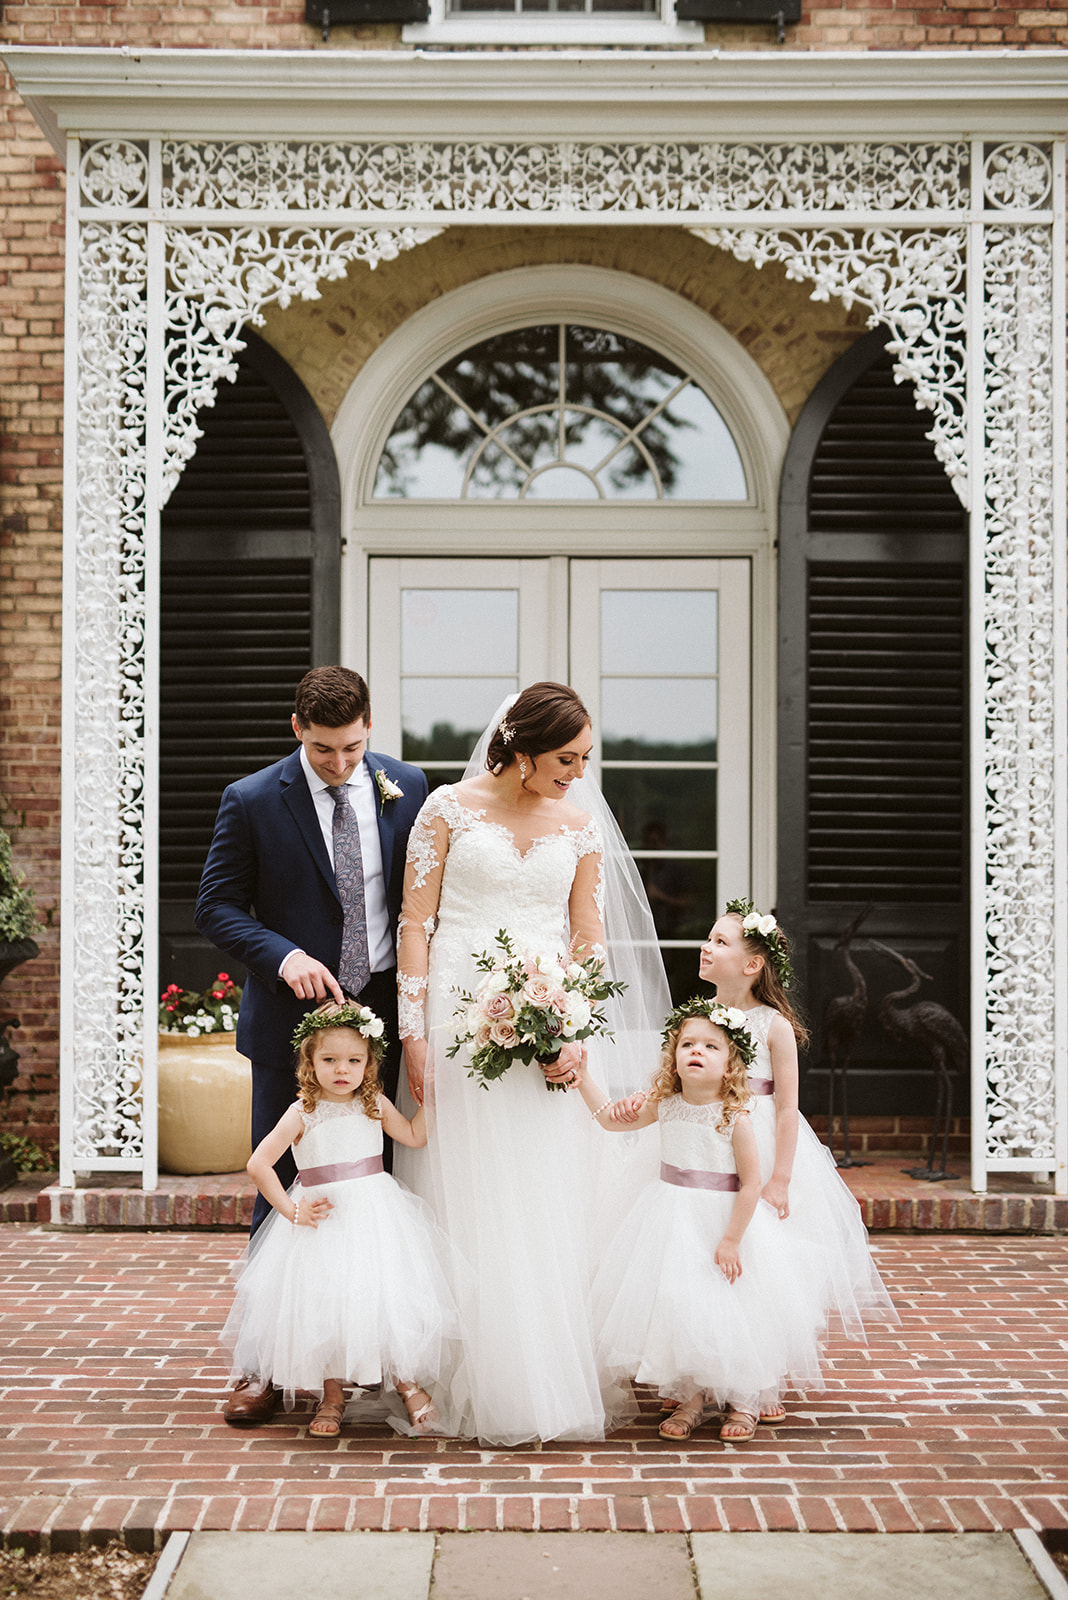 Bride and groom with their flower girls on their wedding day.